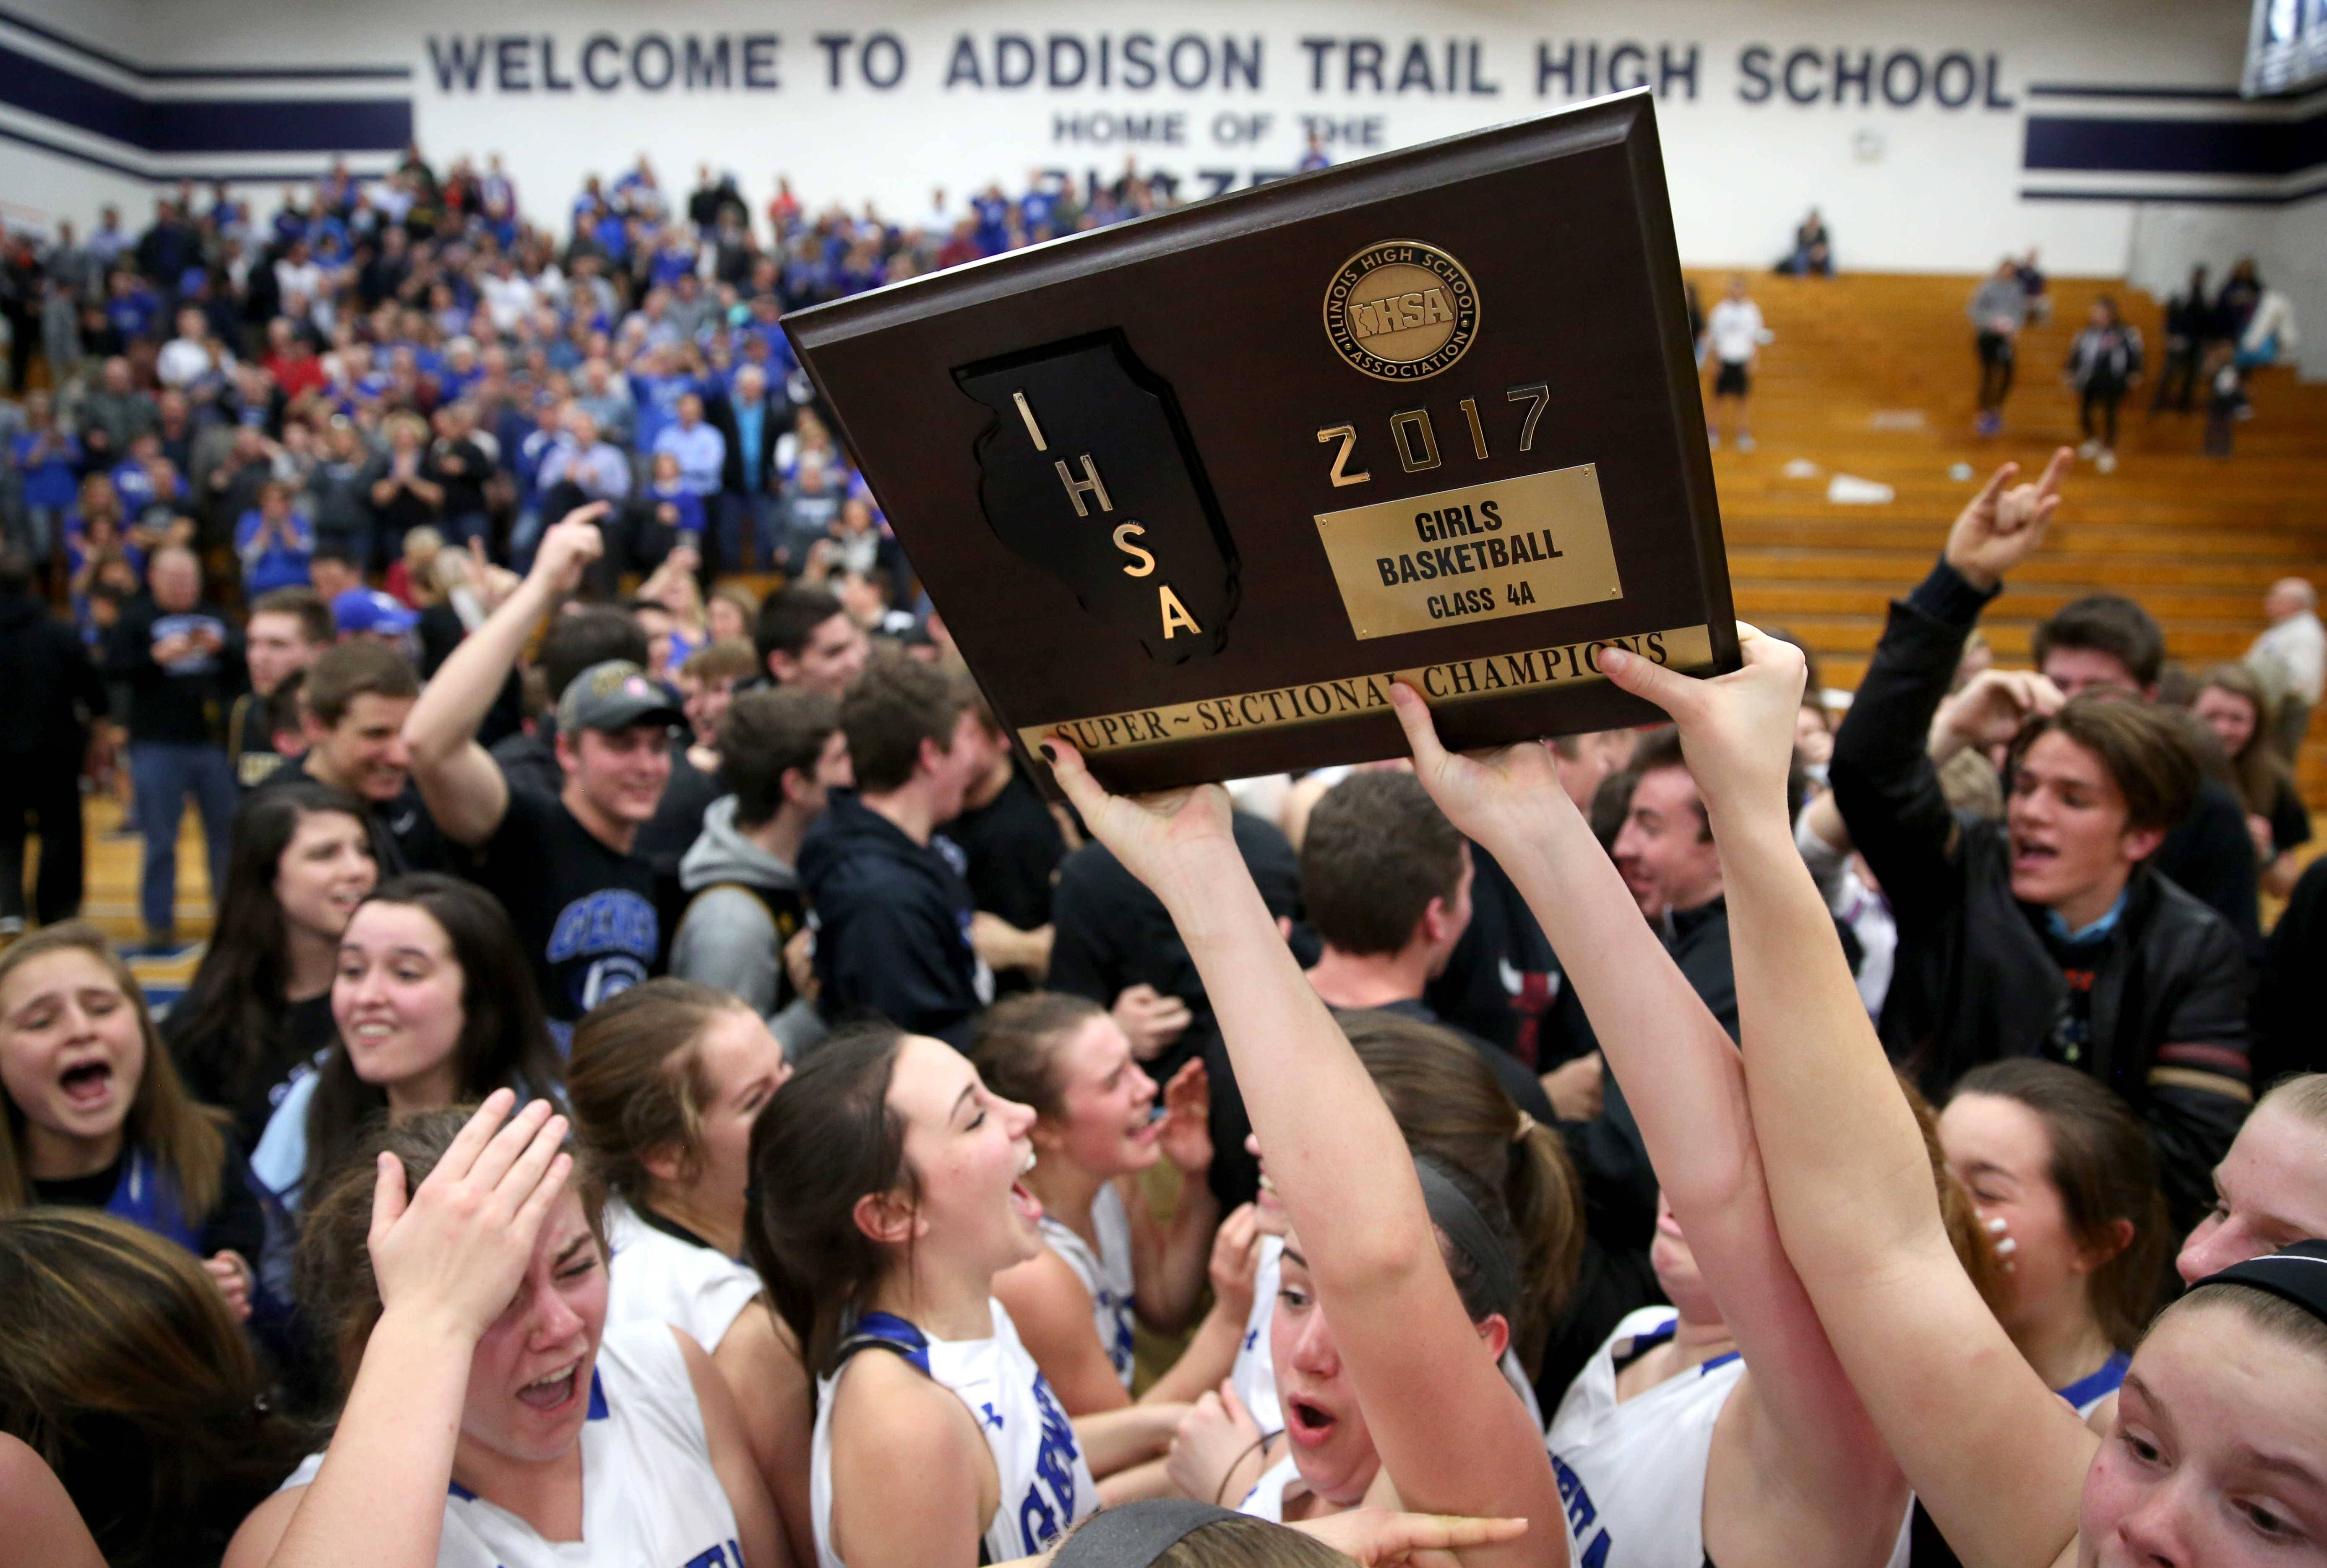 The Vikings of Geneva hoist their hardware after a win over Maine West during girls basketball supersectional action at Addison Trail High School Monday night.